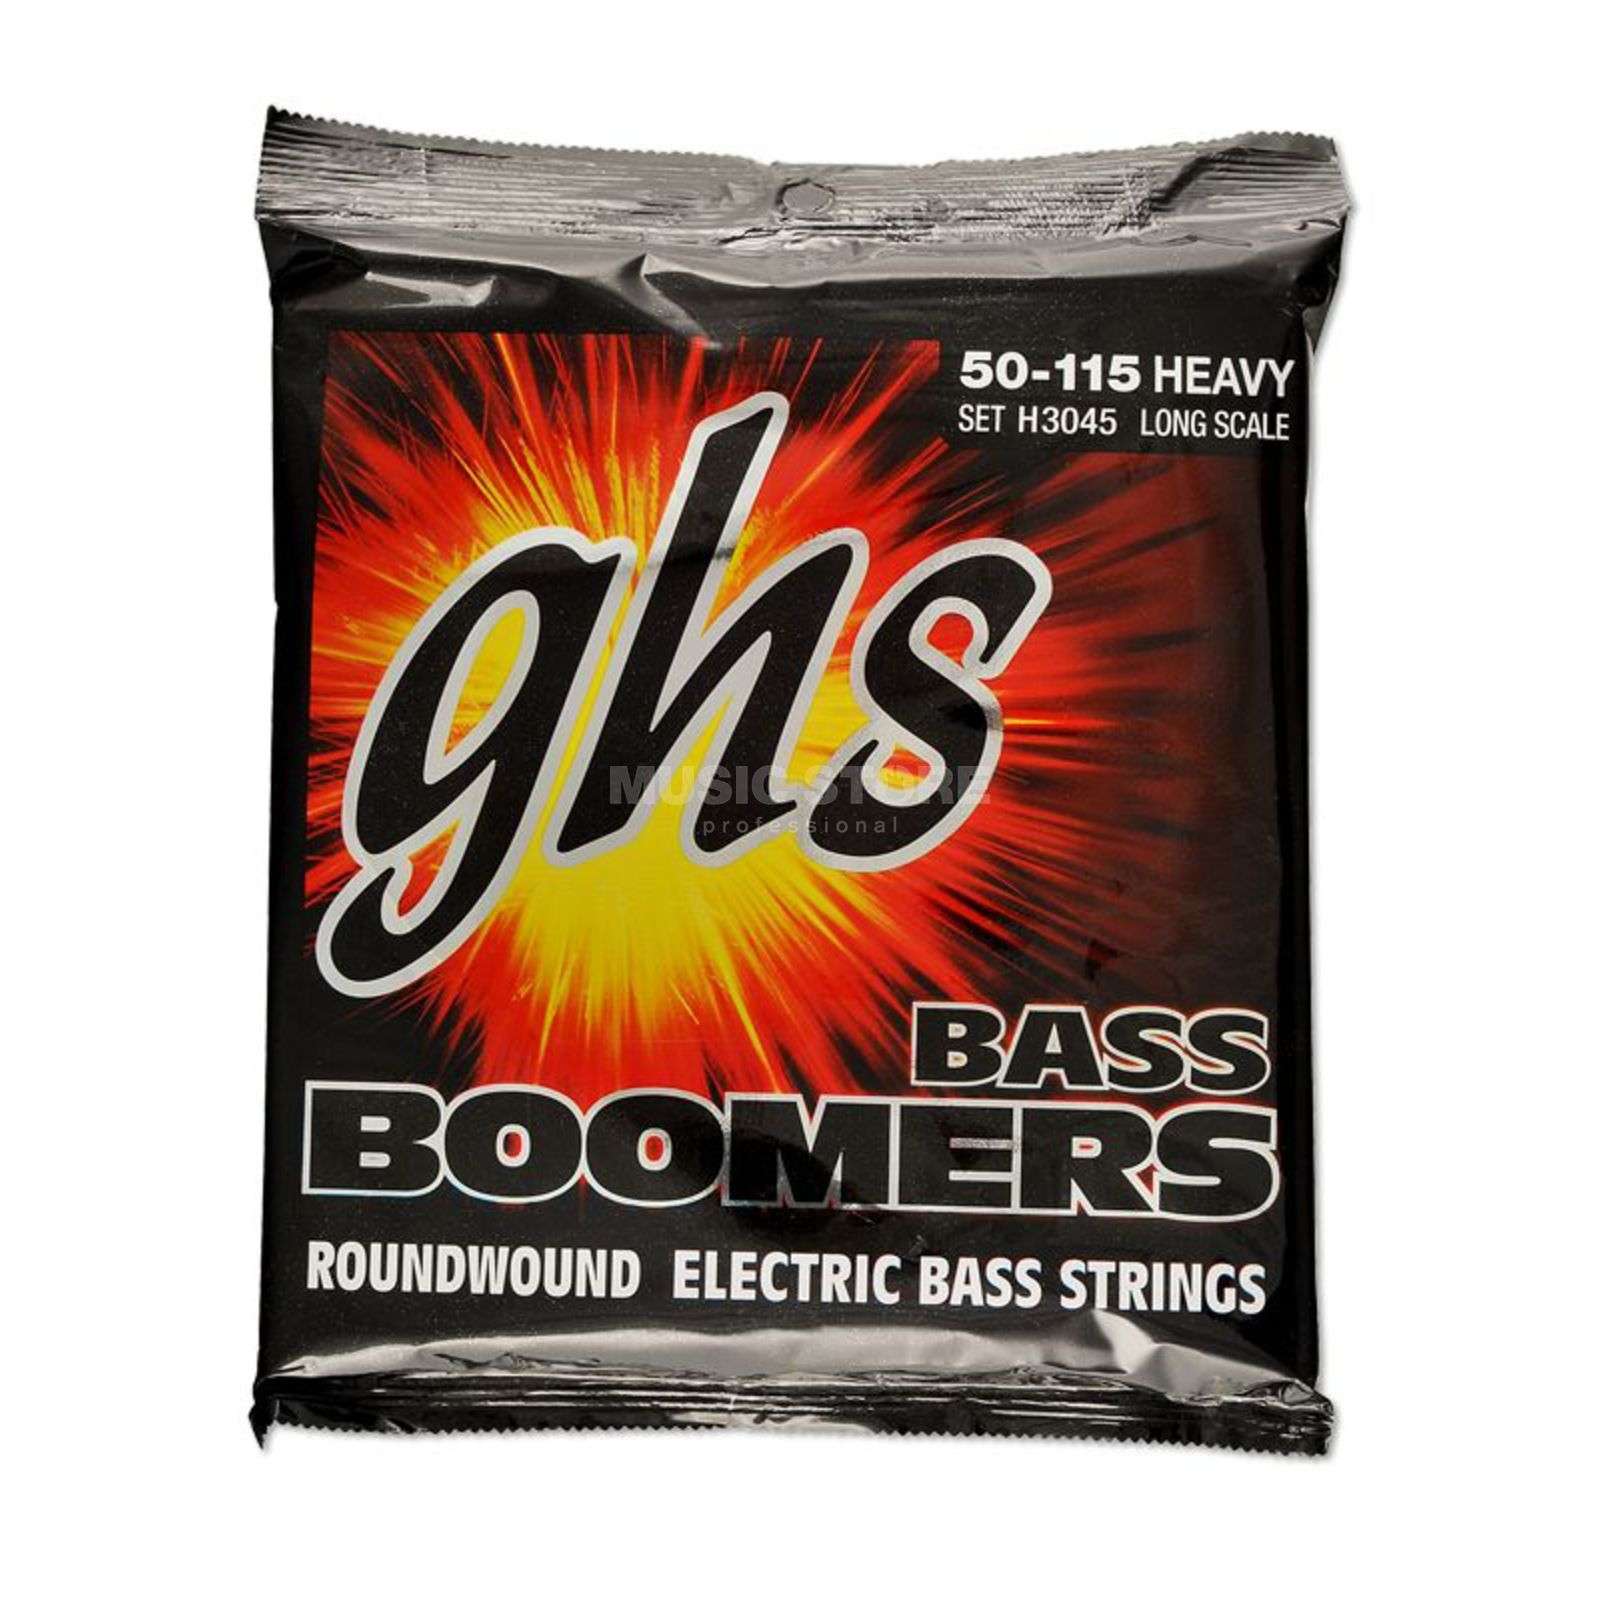 GHS 4er bas Boomers 50-115 uren Long Scale 50-70-95-115 Productafbeelding